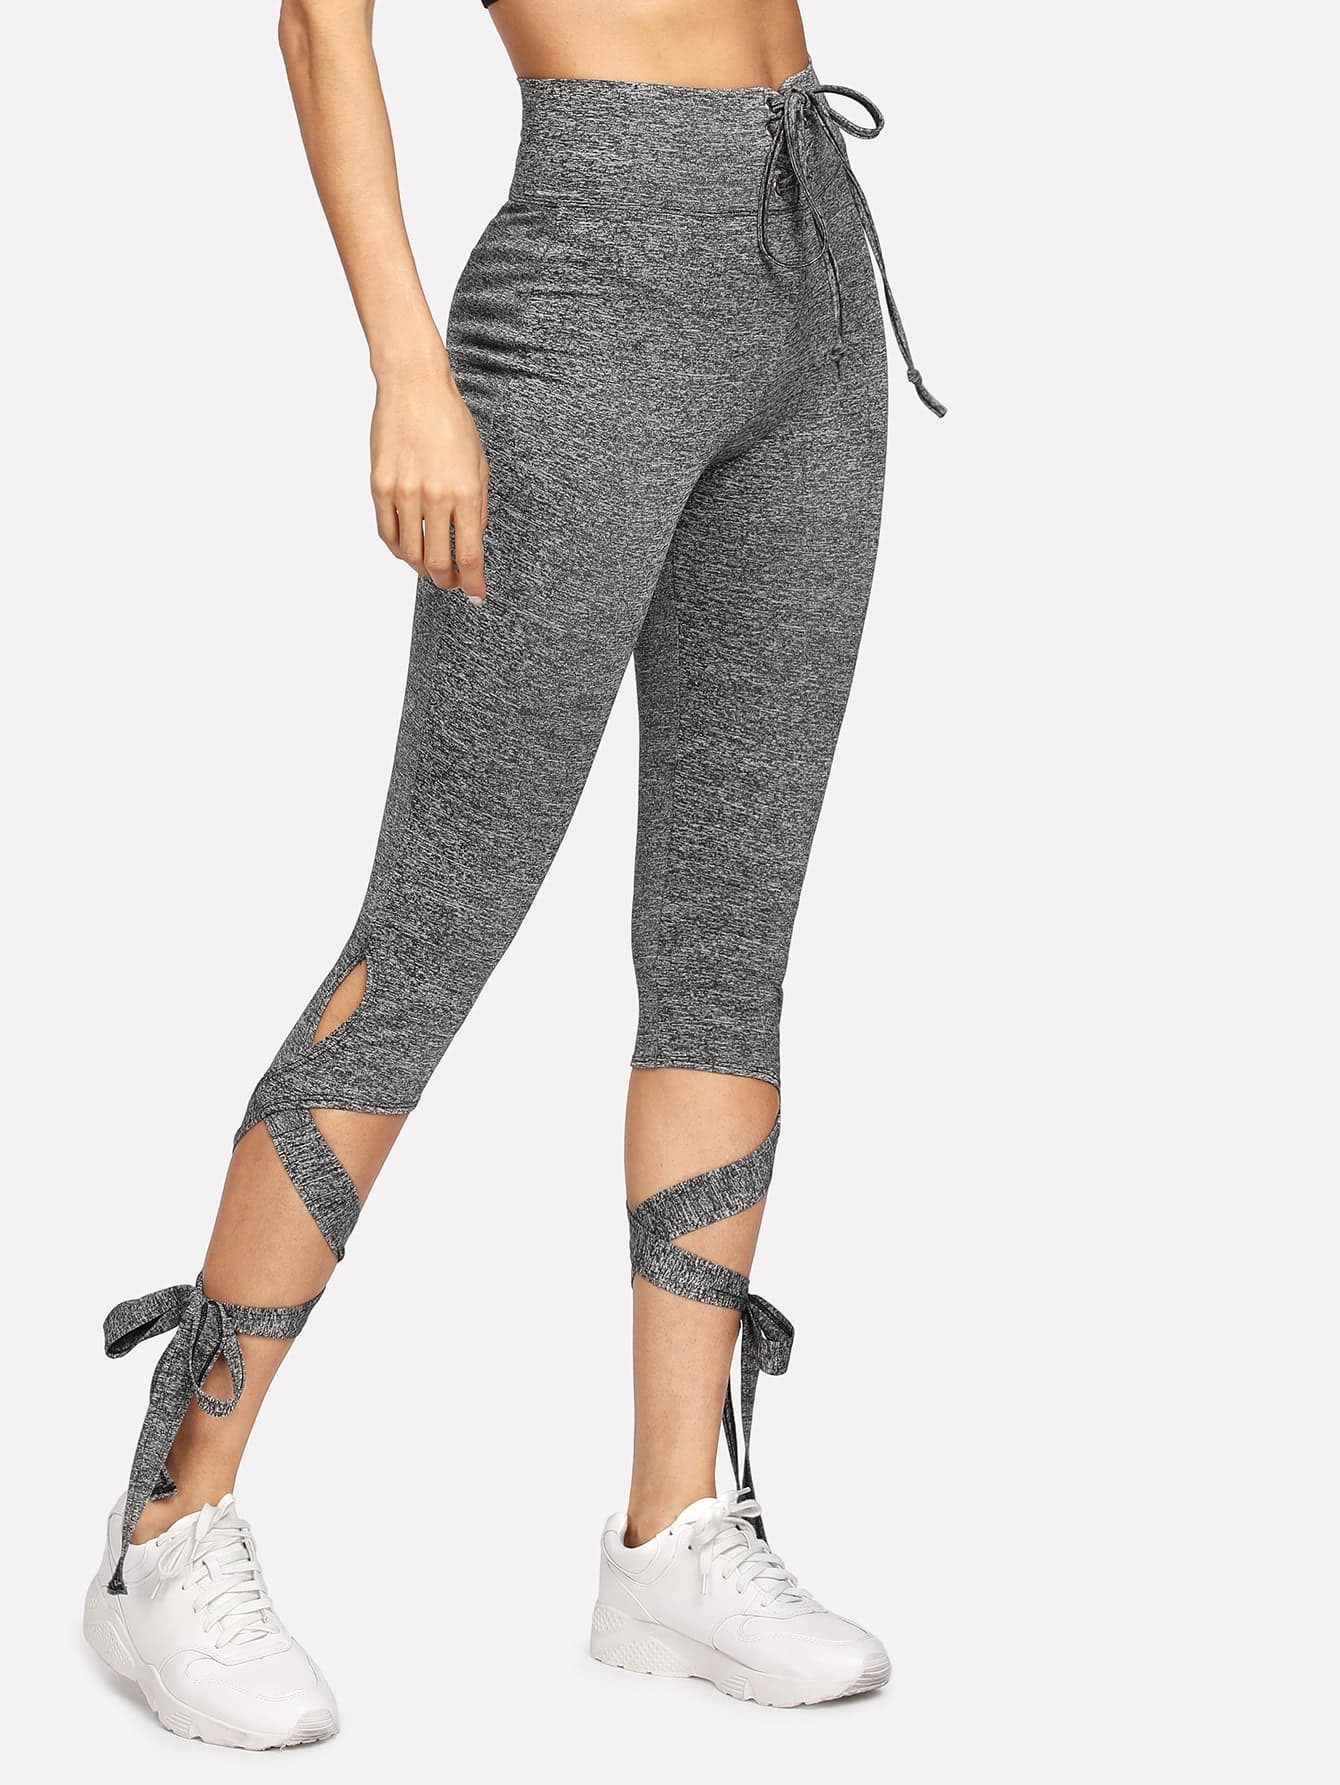 Lace Up Waist Marled Knit Leggings grommet lace up marled knit crop sweatshirt